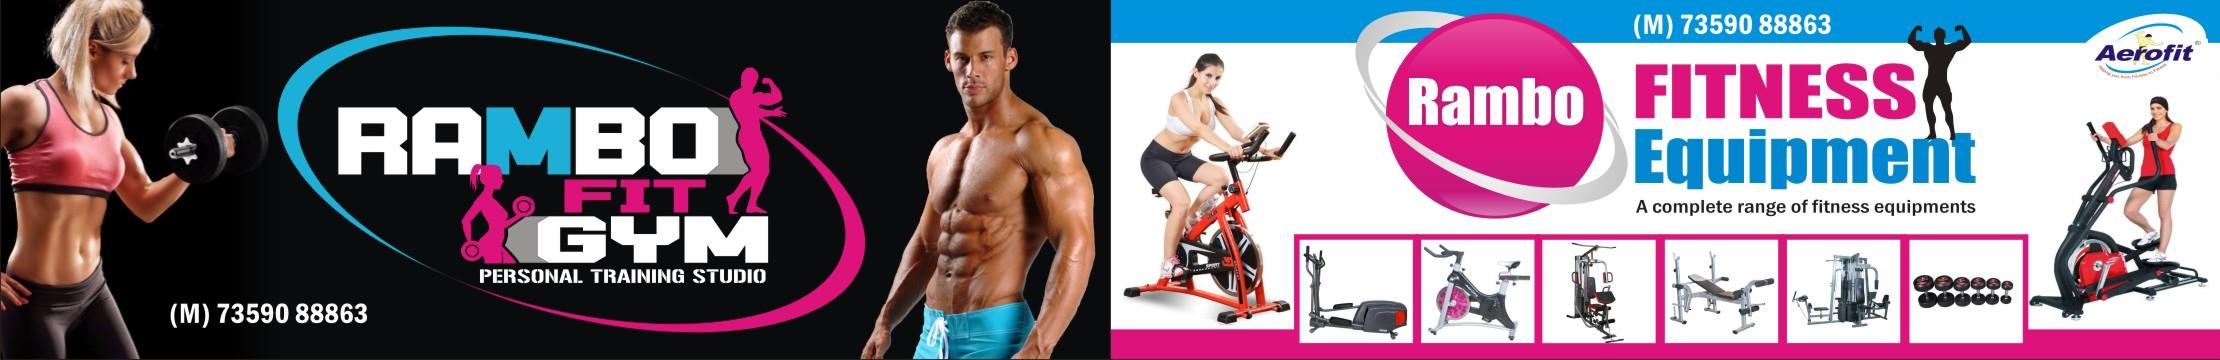 Rambo fitness Equipment is started its journey in 2007,  as a success Manufacturer,  Trader and Supplier of Gym Press Machines,  Gym Multi Purpose Benches, Gym Fitness Equipments,  Gym Accessories, Gym Equipment Stands, Gym Curlers,  Gym Fi - by Rambo Fitness Equipment , Ahmedabad